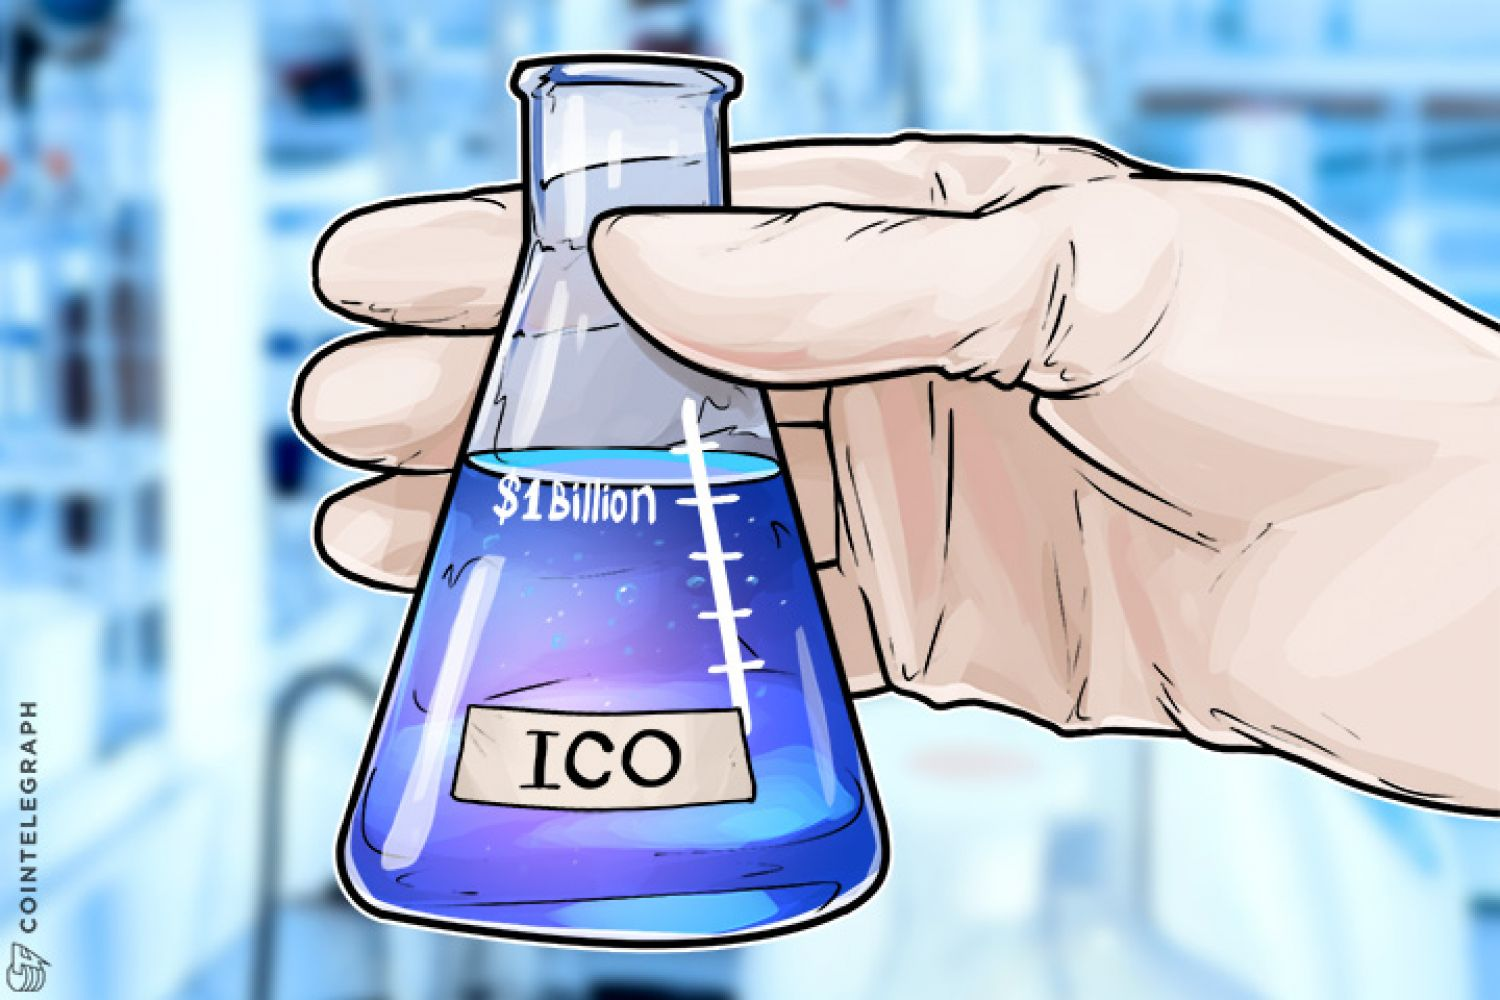 Perfect recipe for an ICO